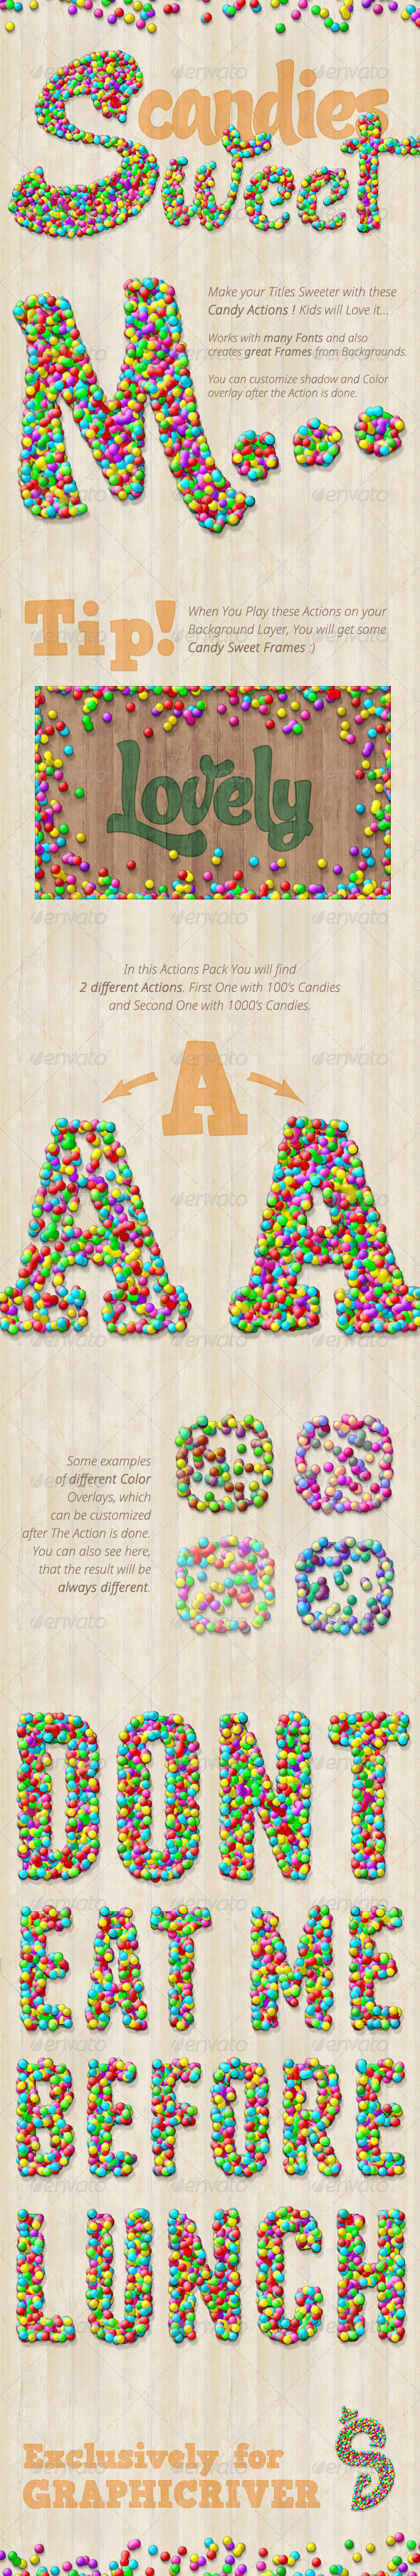 GraphicRiver Candy Text Creator Photoshop Actions 7588581